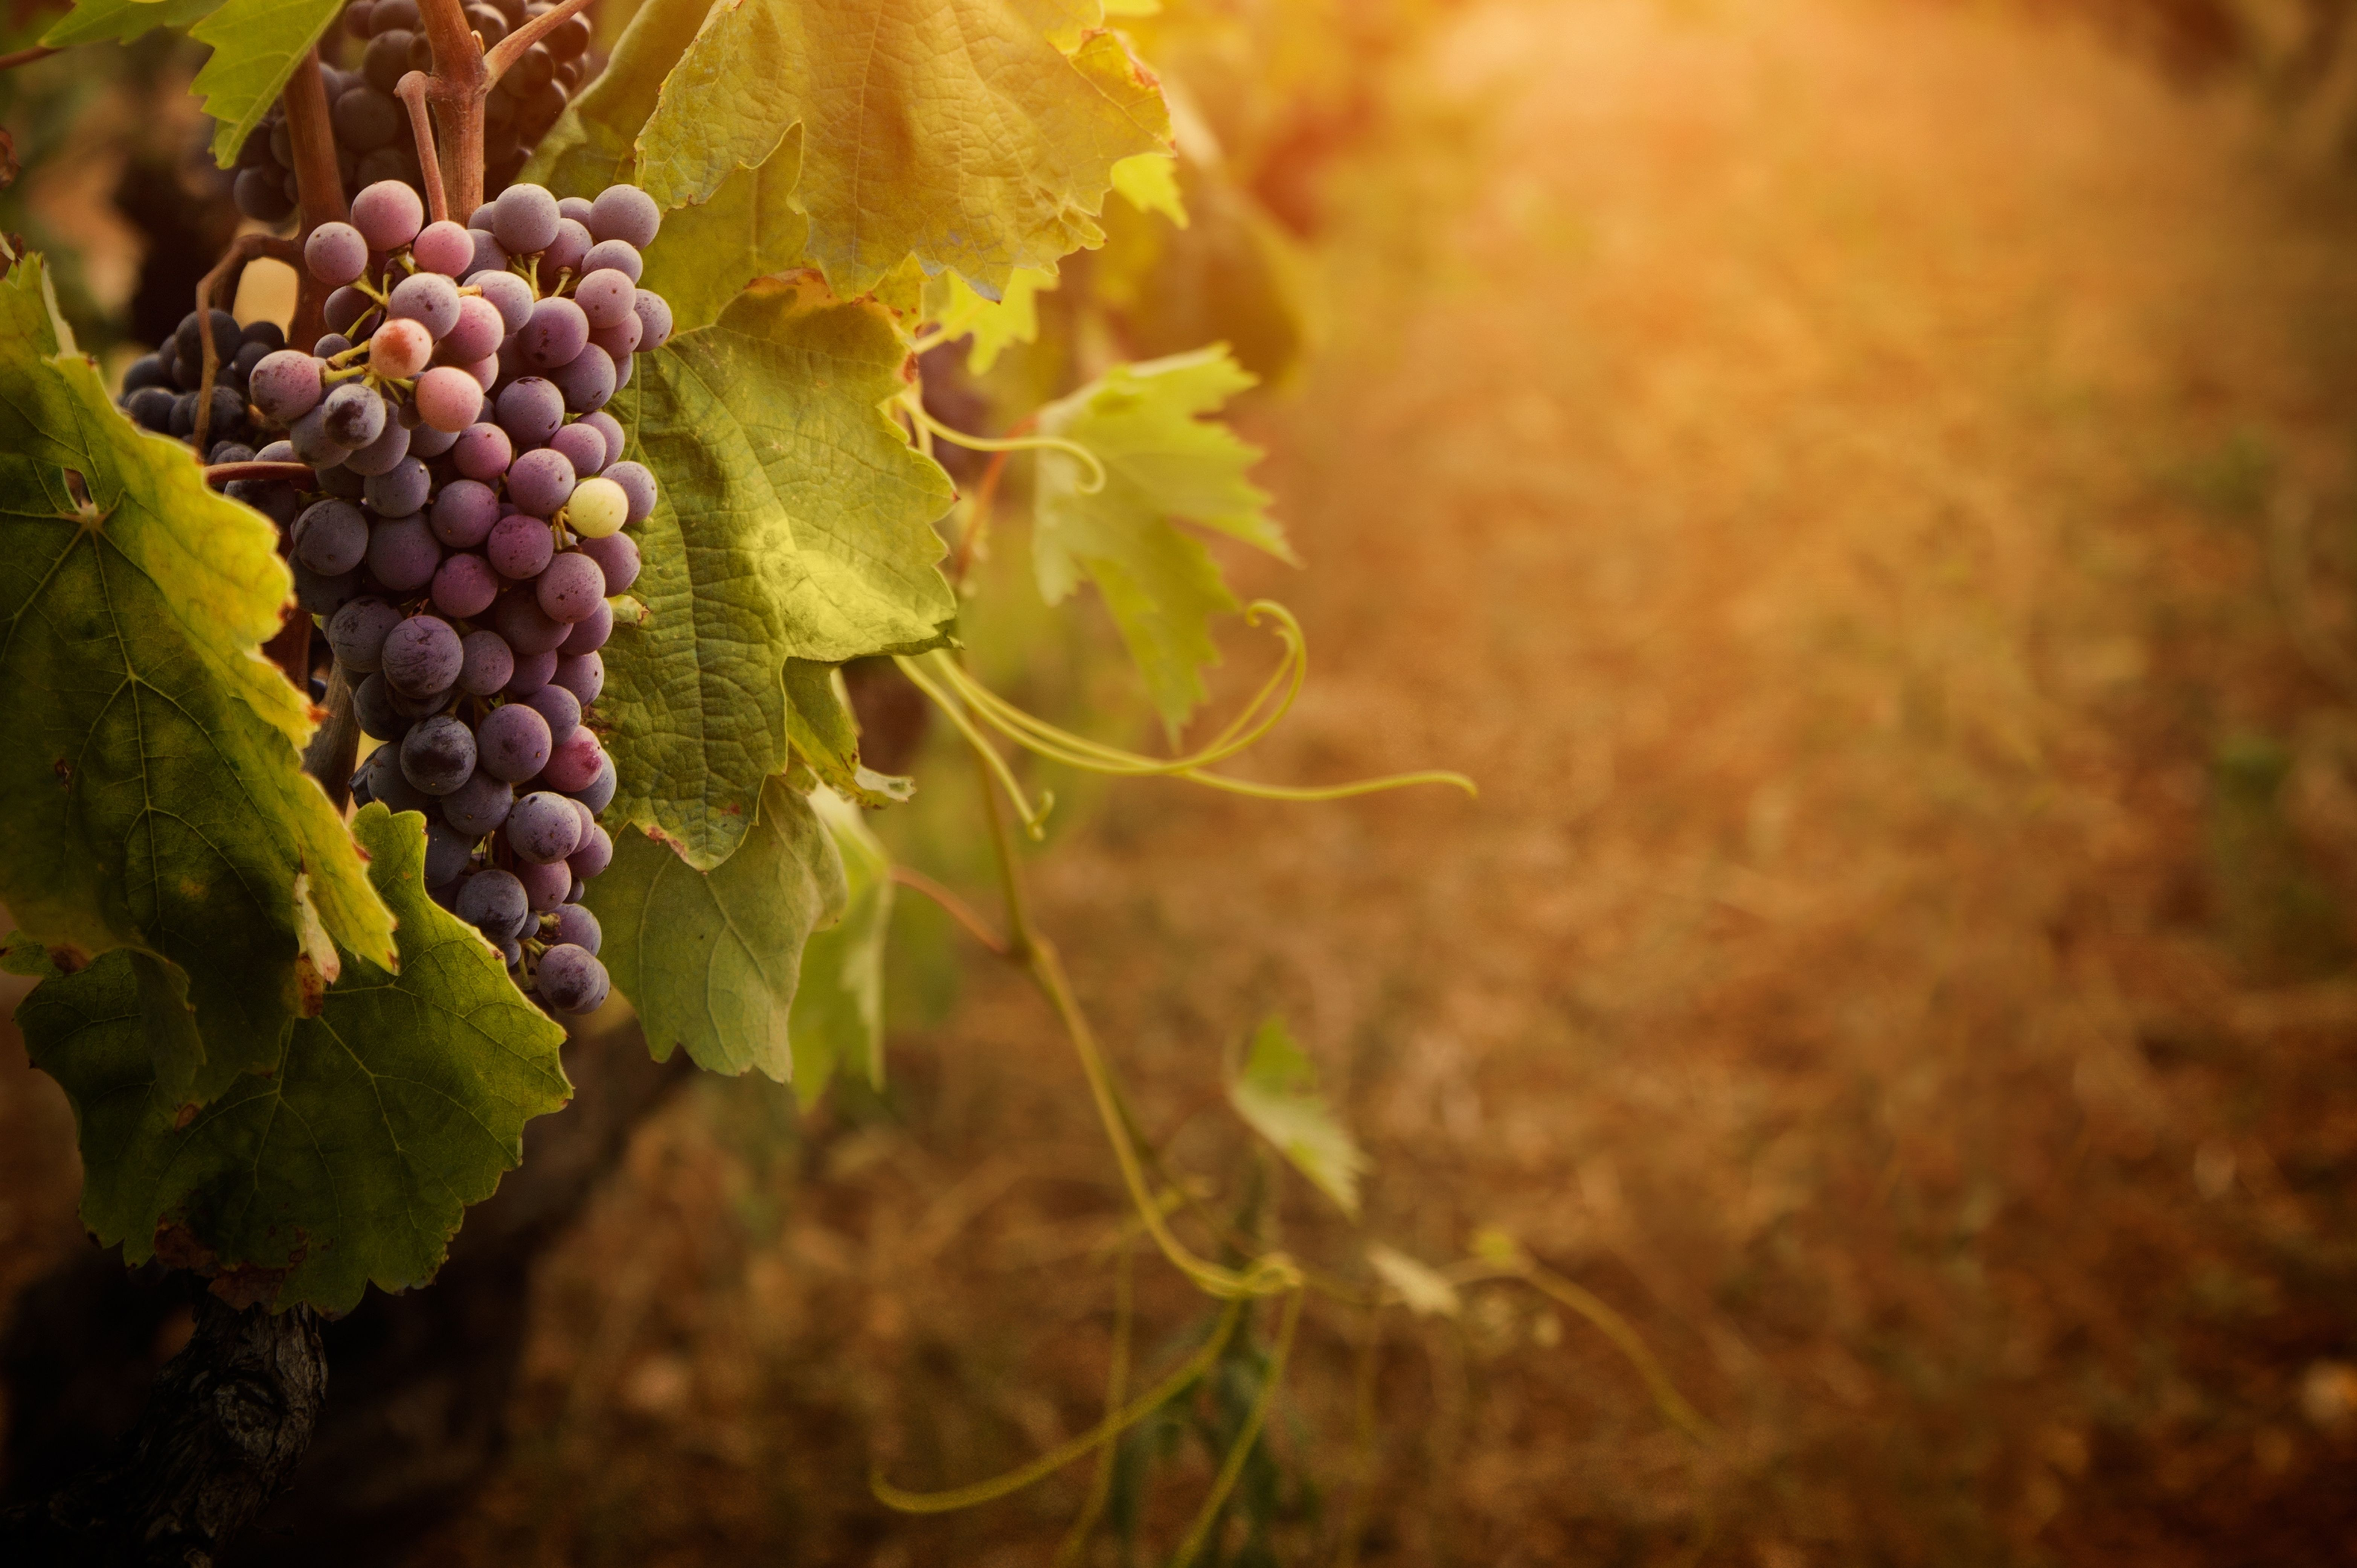 Wine Grapes Wallpaper Grape Wallpaper Grapes Red Grapes